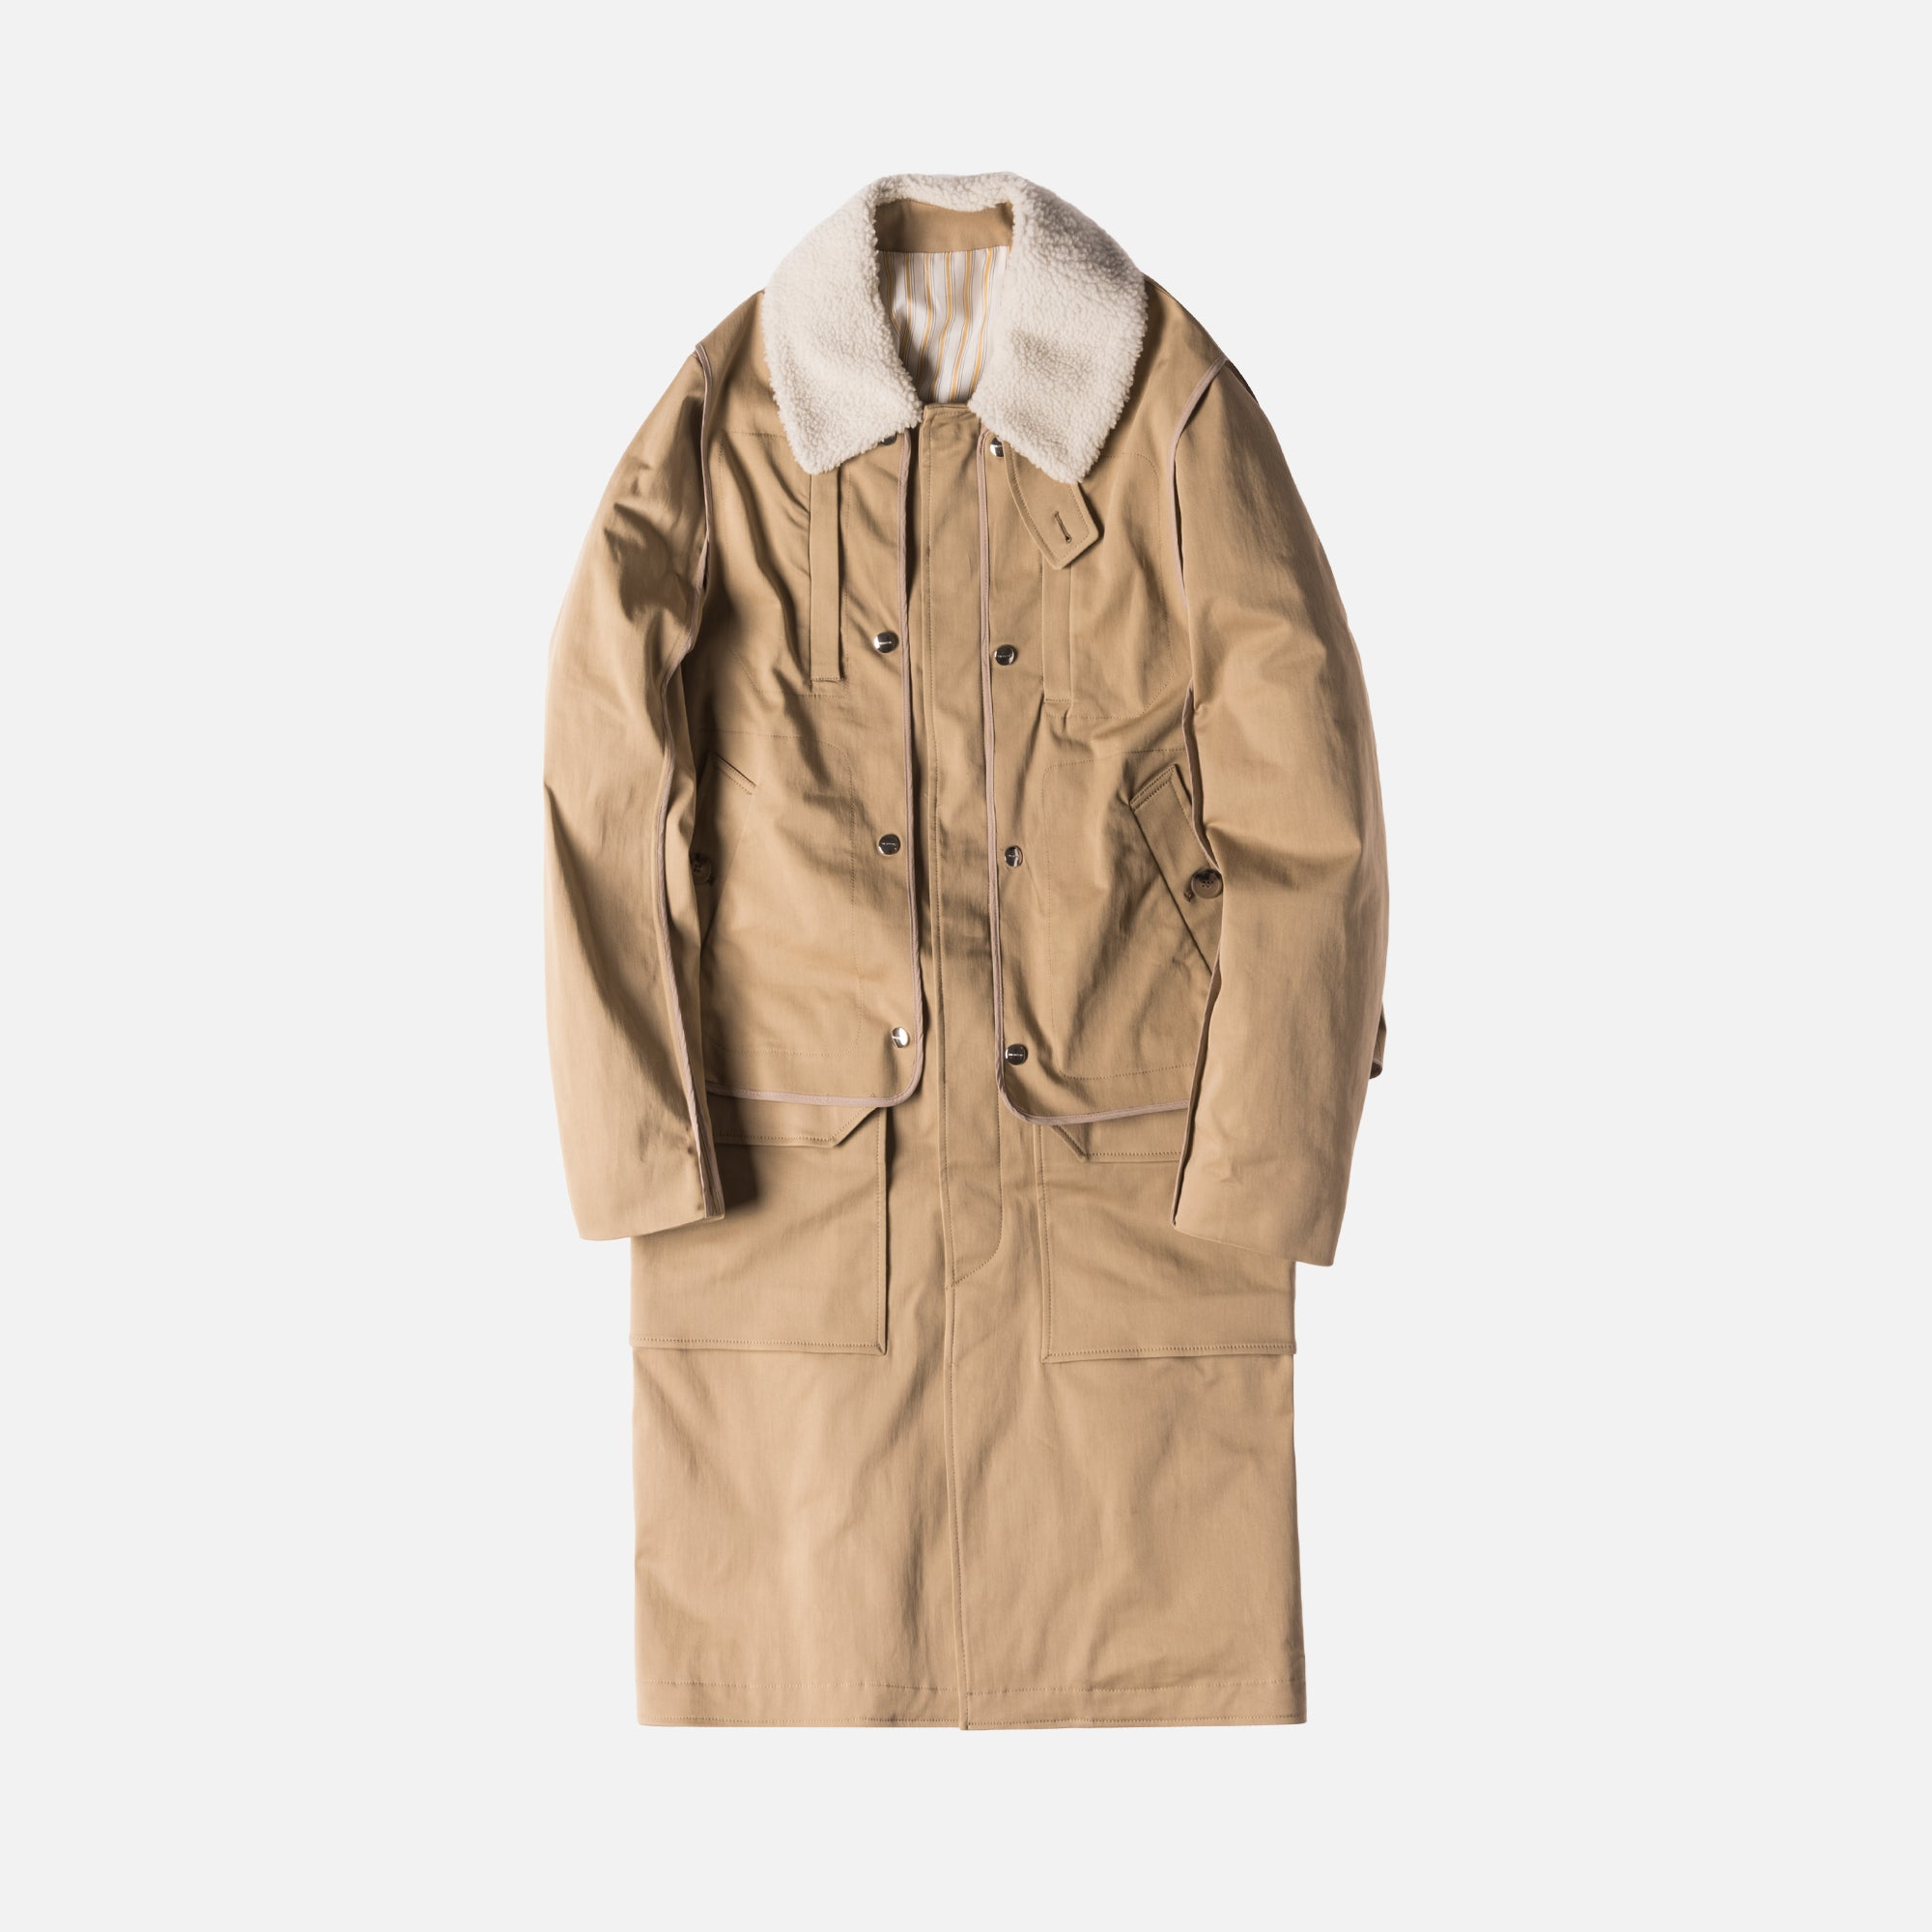 Tim Coppens Layered Trench Coat - Tan